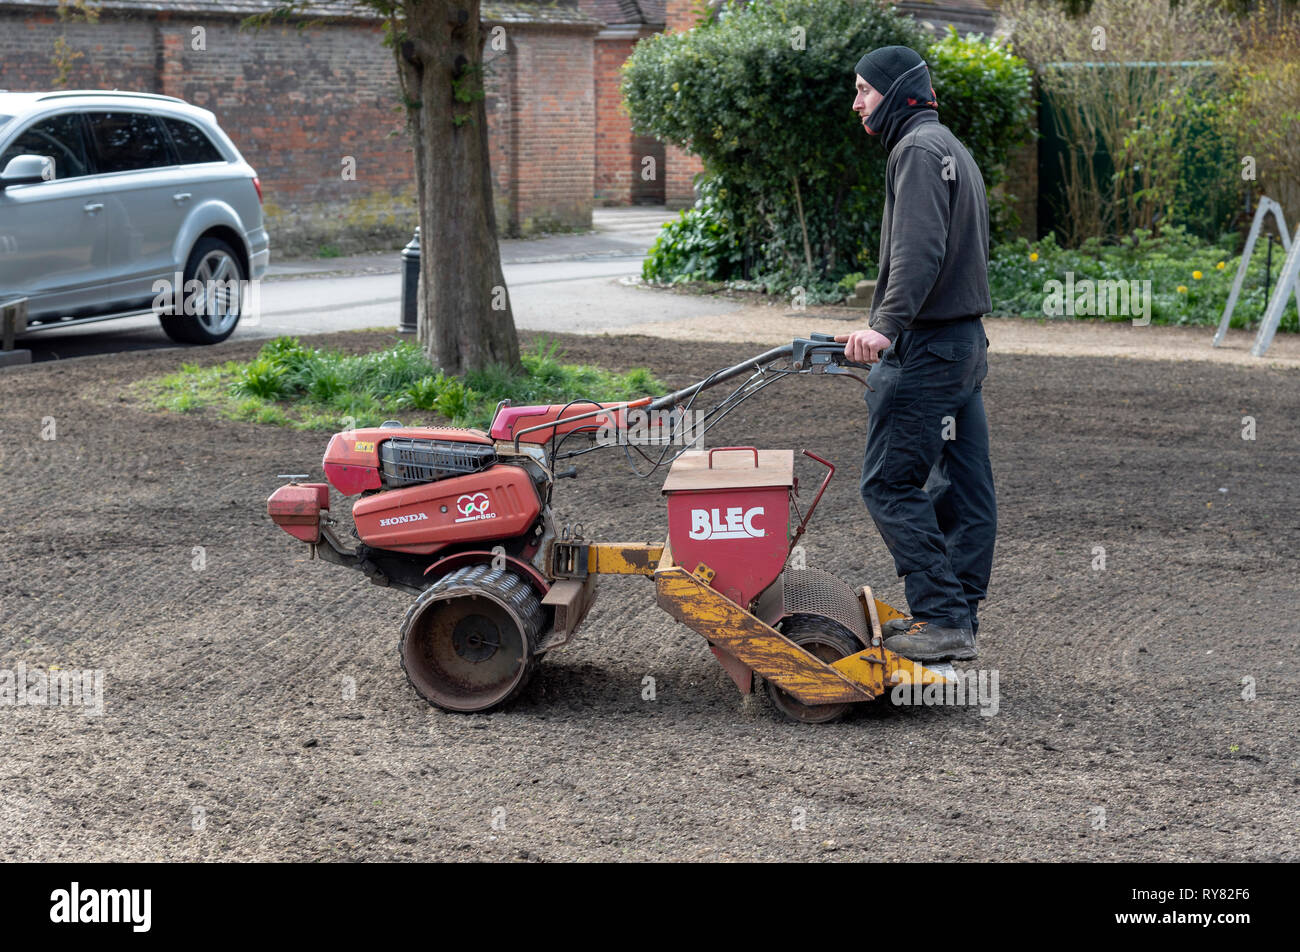 Winchester, Hampshire, England UK. March 2019. Landscape gardener riding on a seed spreader and roller to form a new lawn. - Stock Image